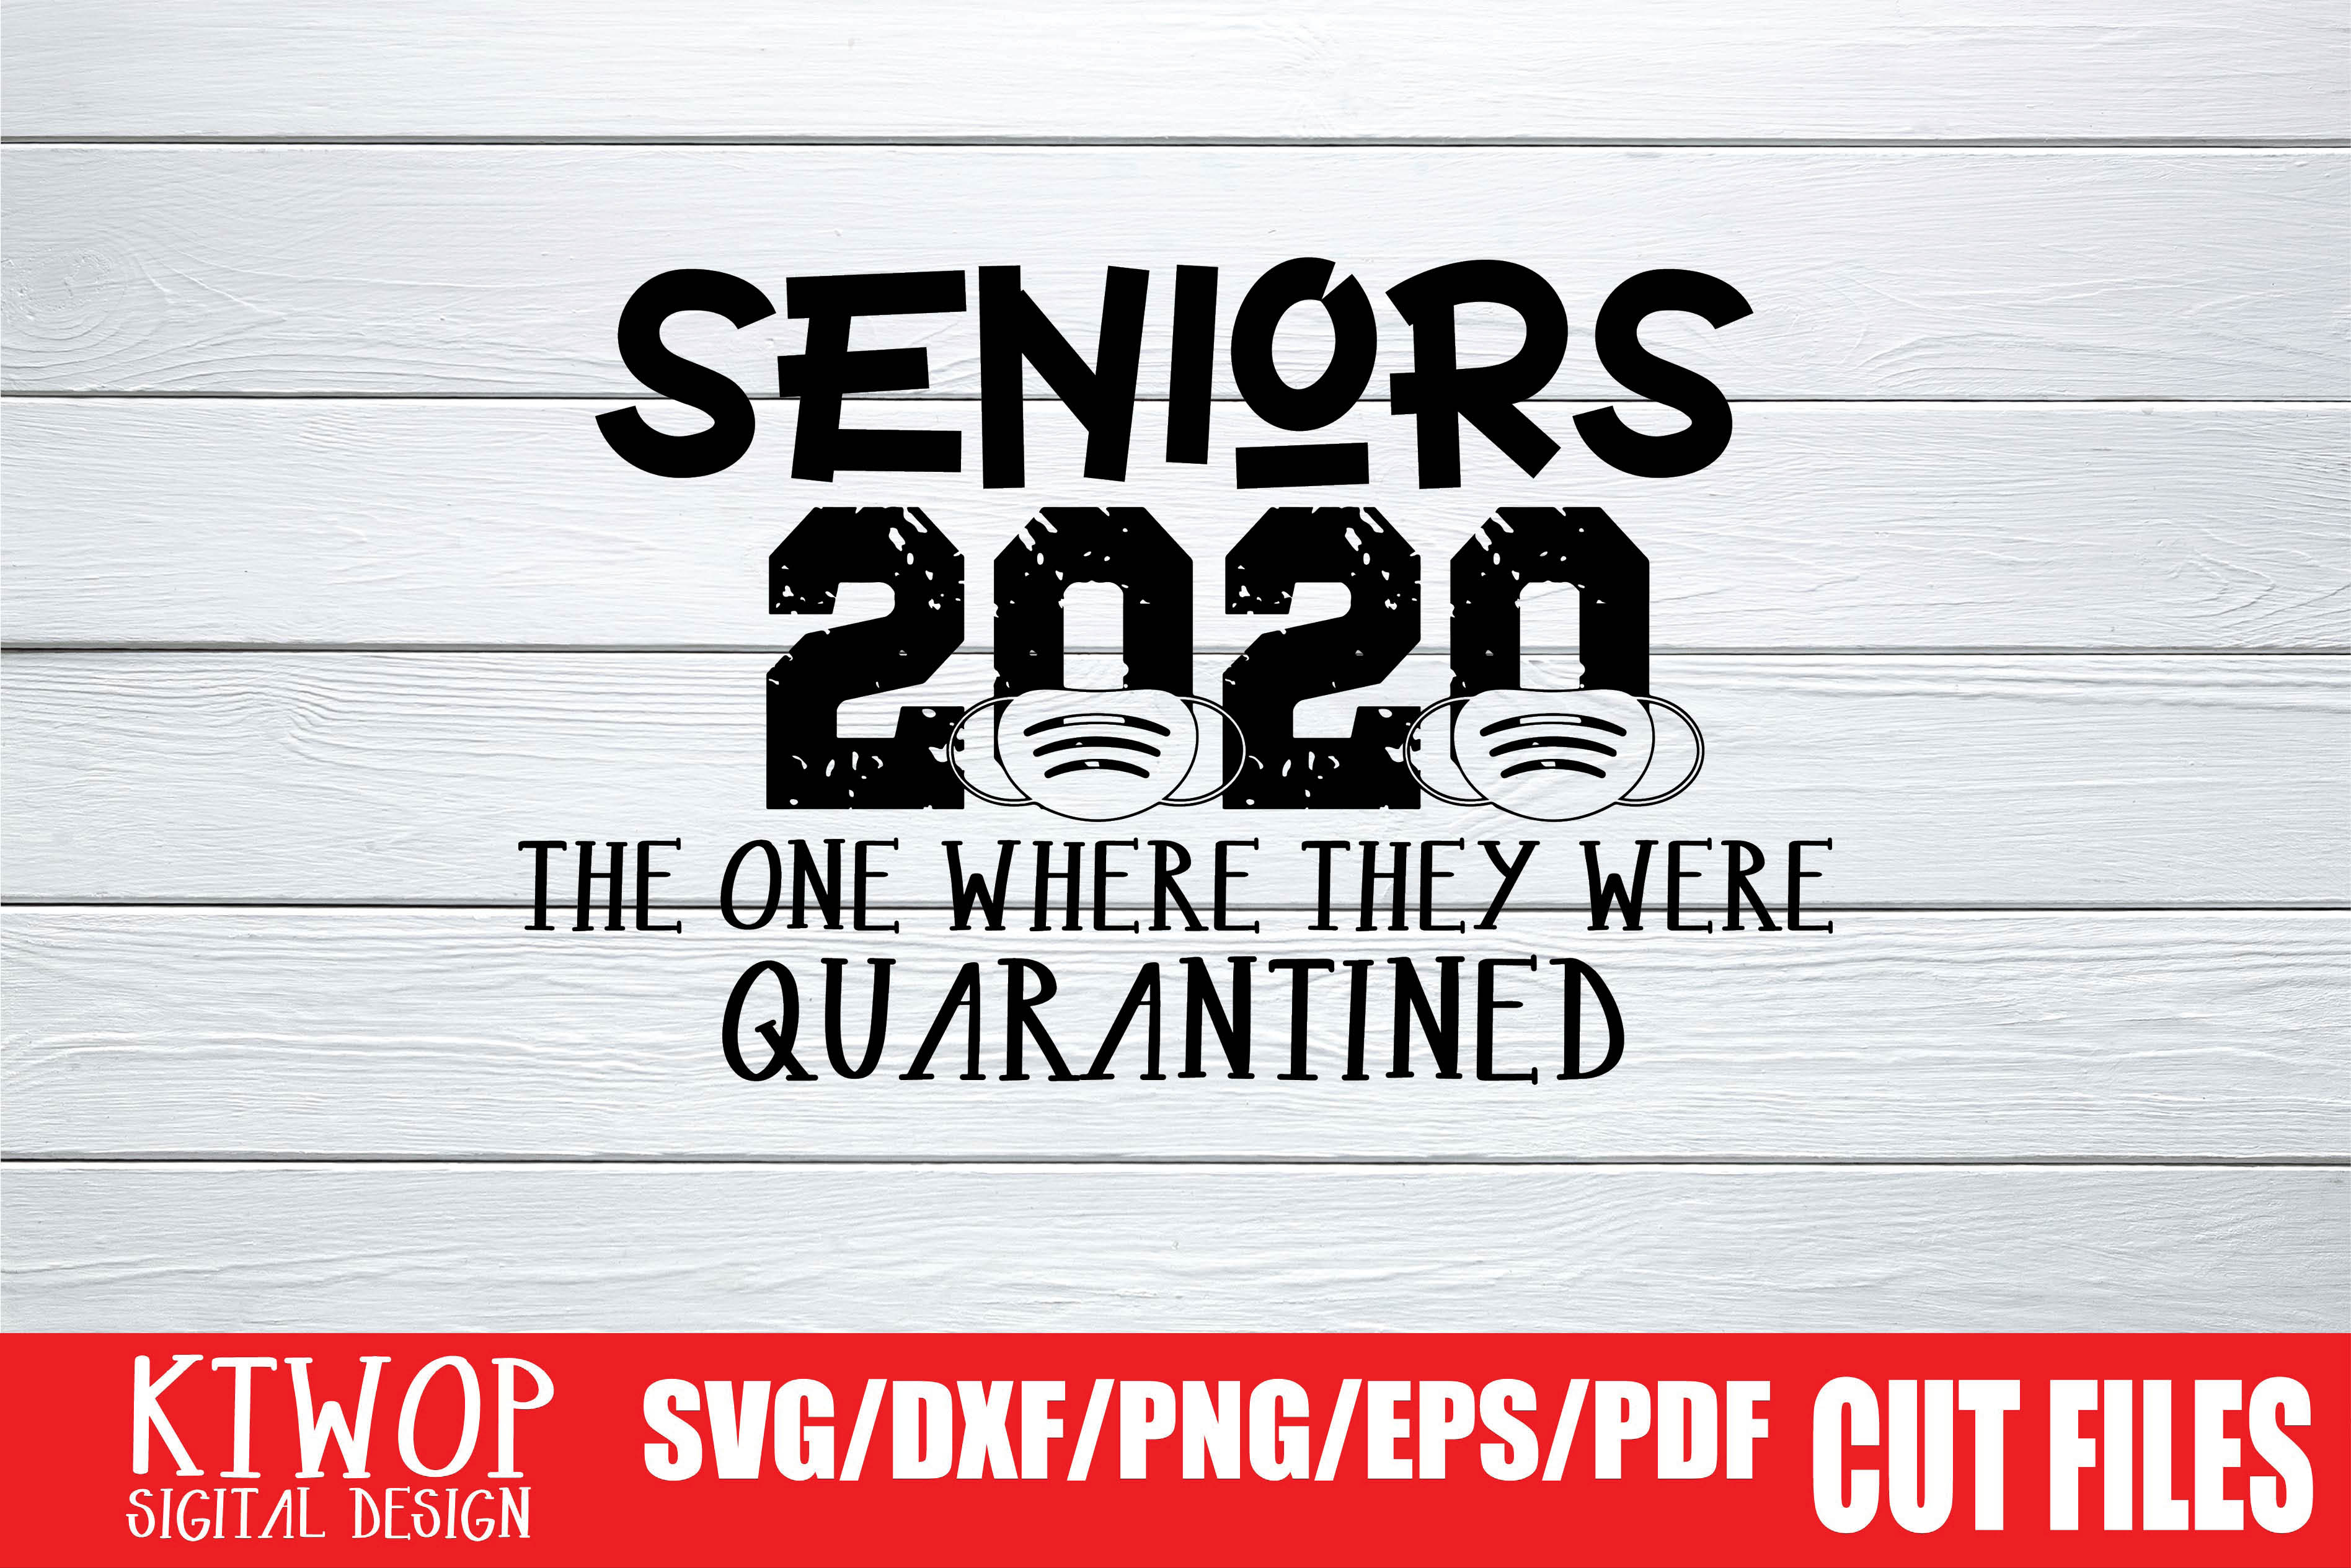 Download Free Seniors 2020 The One Where They Were Quarantined Graphic By for Cricut Explore, Silhouette and other cutting machines.